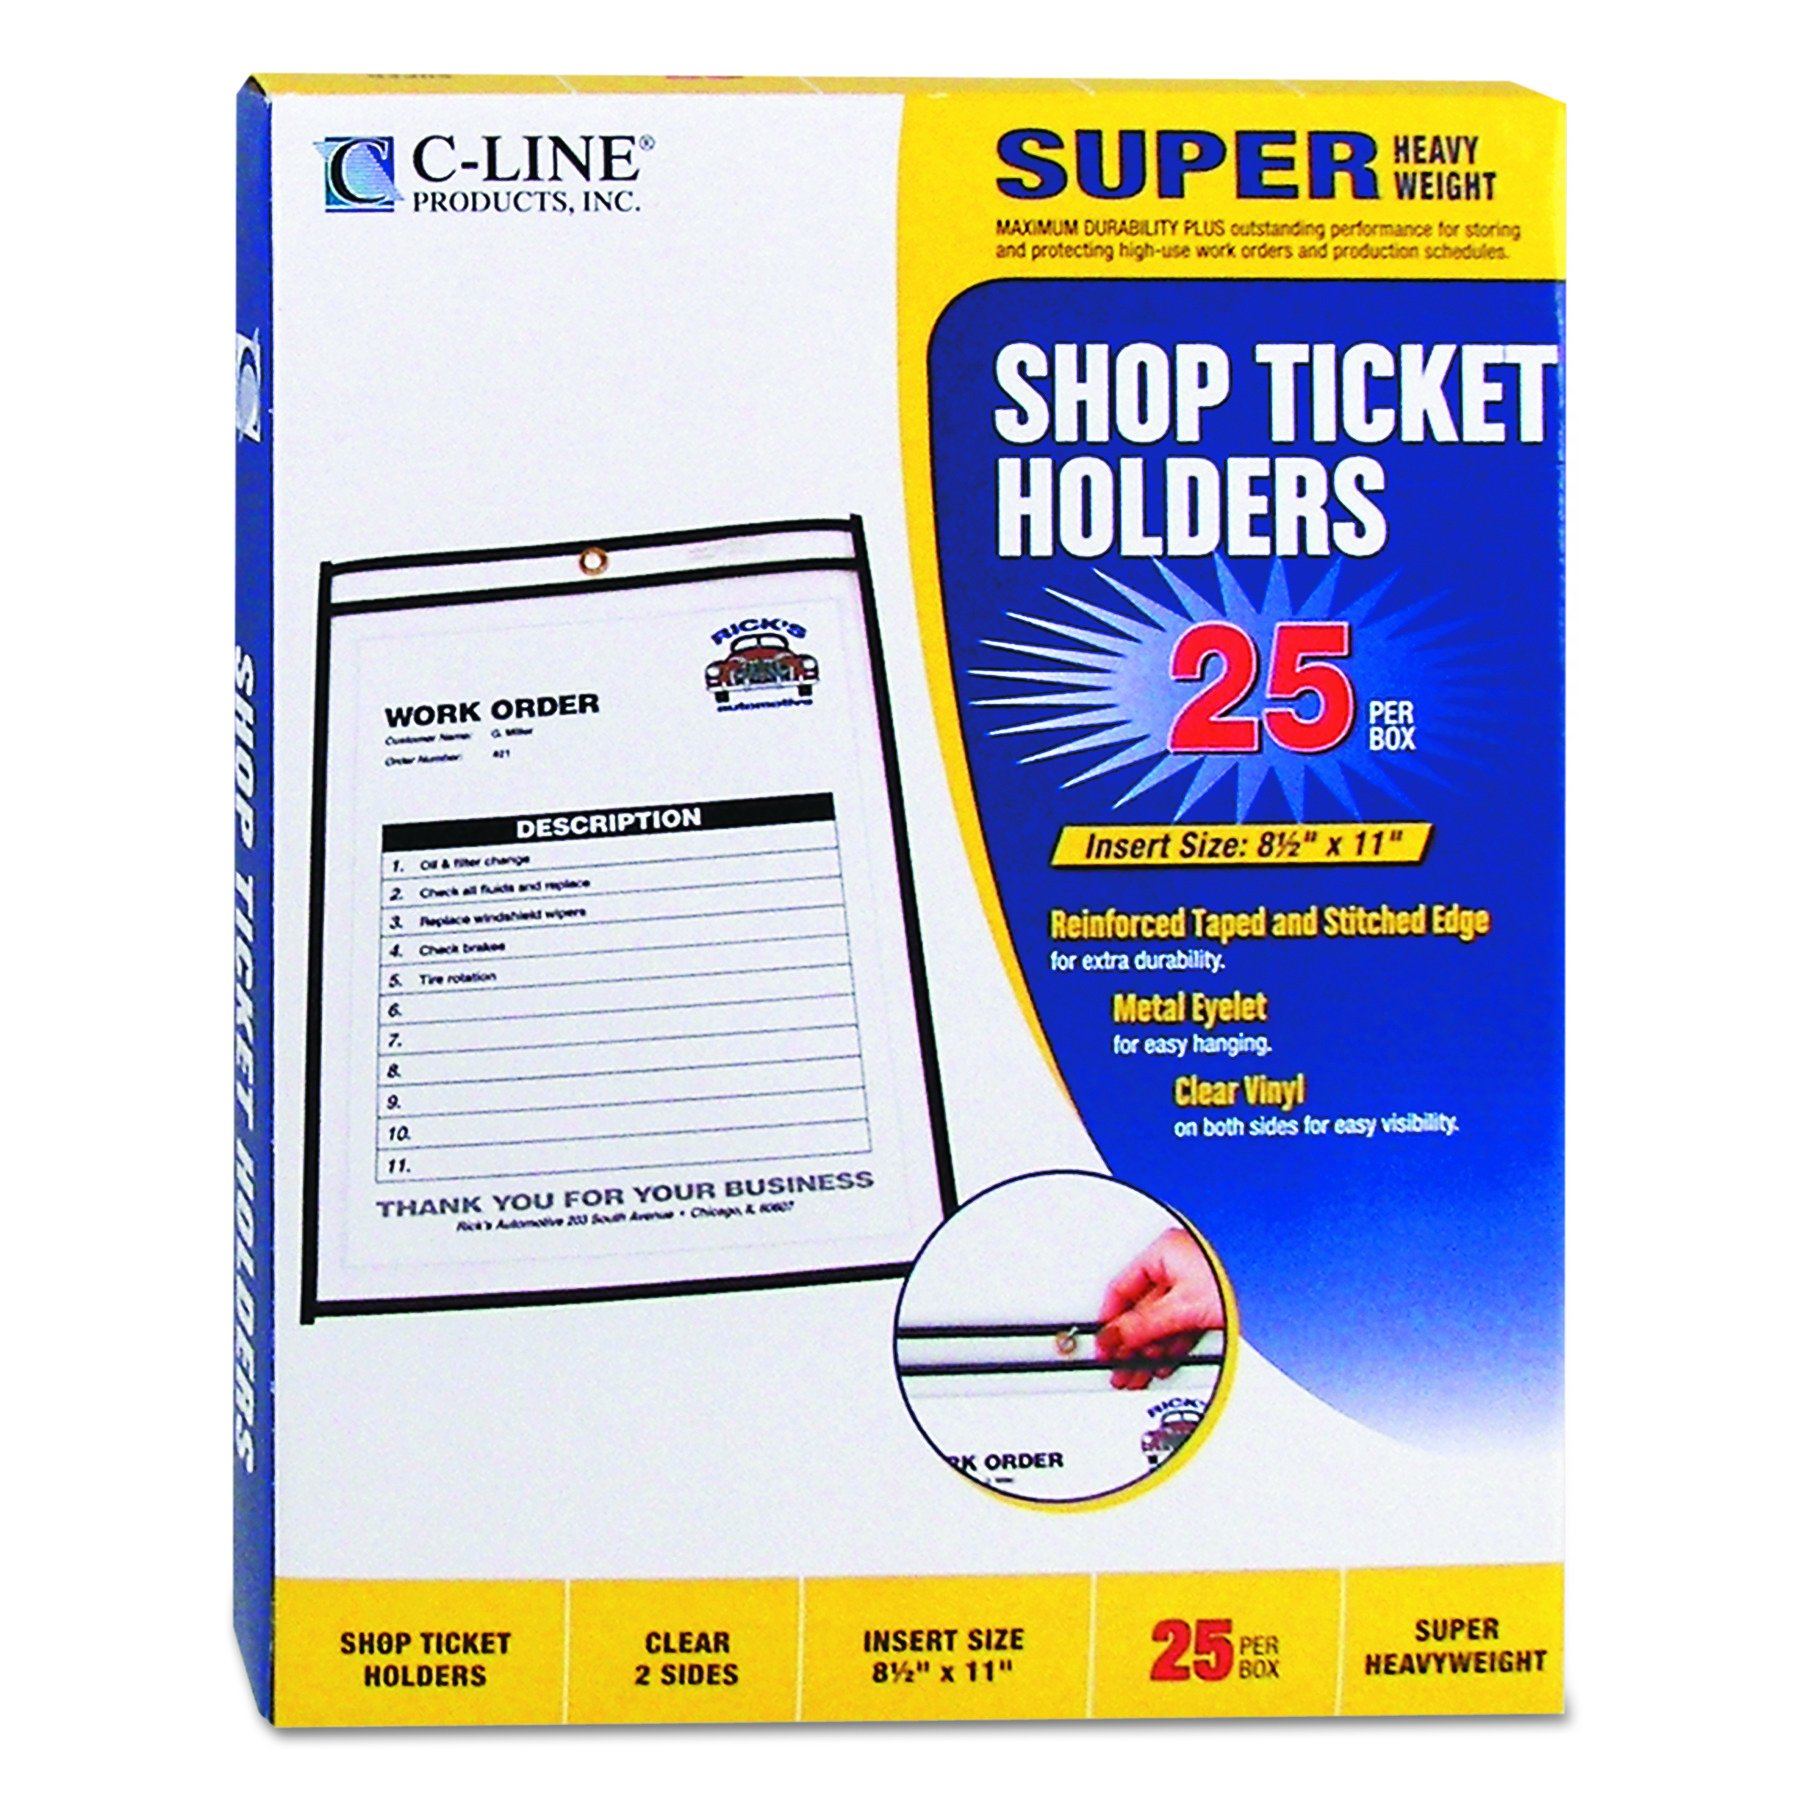 C-Line Stitched Shop Ticket Holders, Both Sides Clear, 8.5 x 11 Inches, 25 per Box (46911) by C-Line